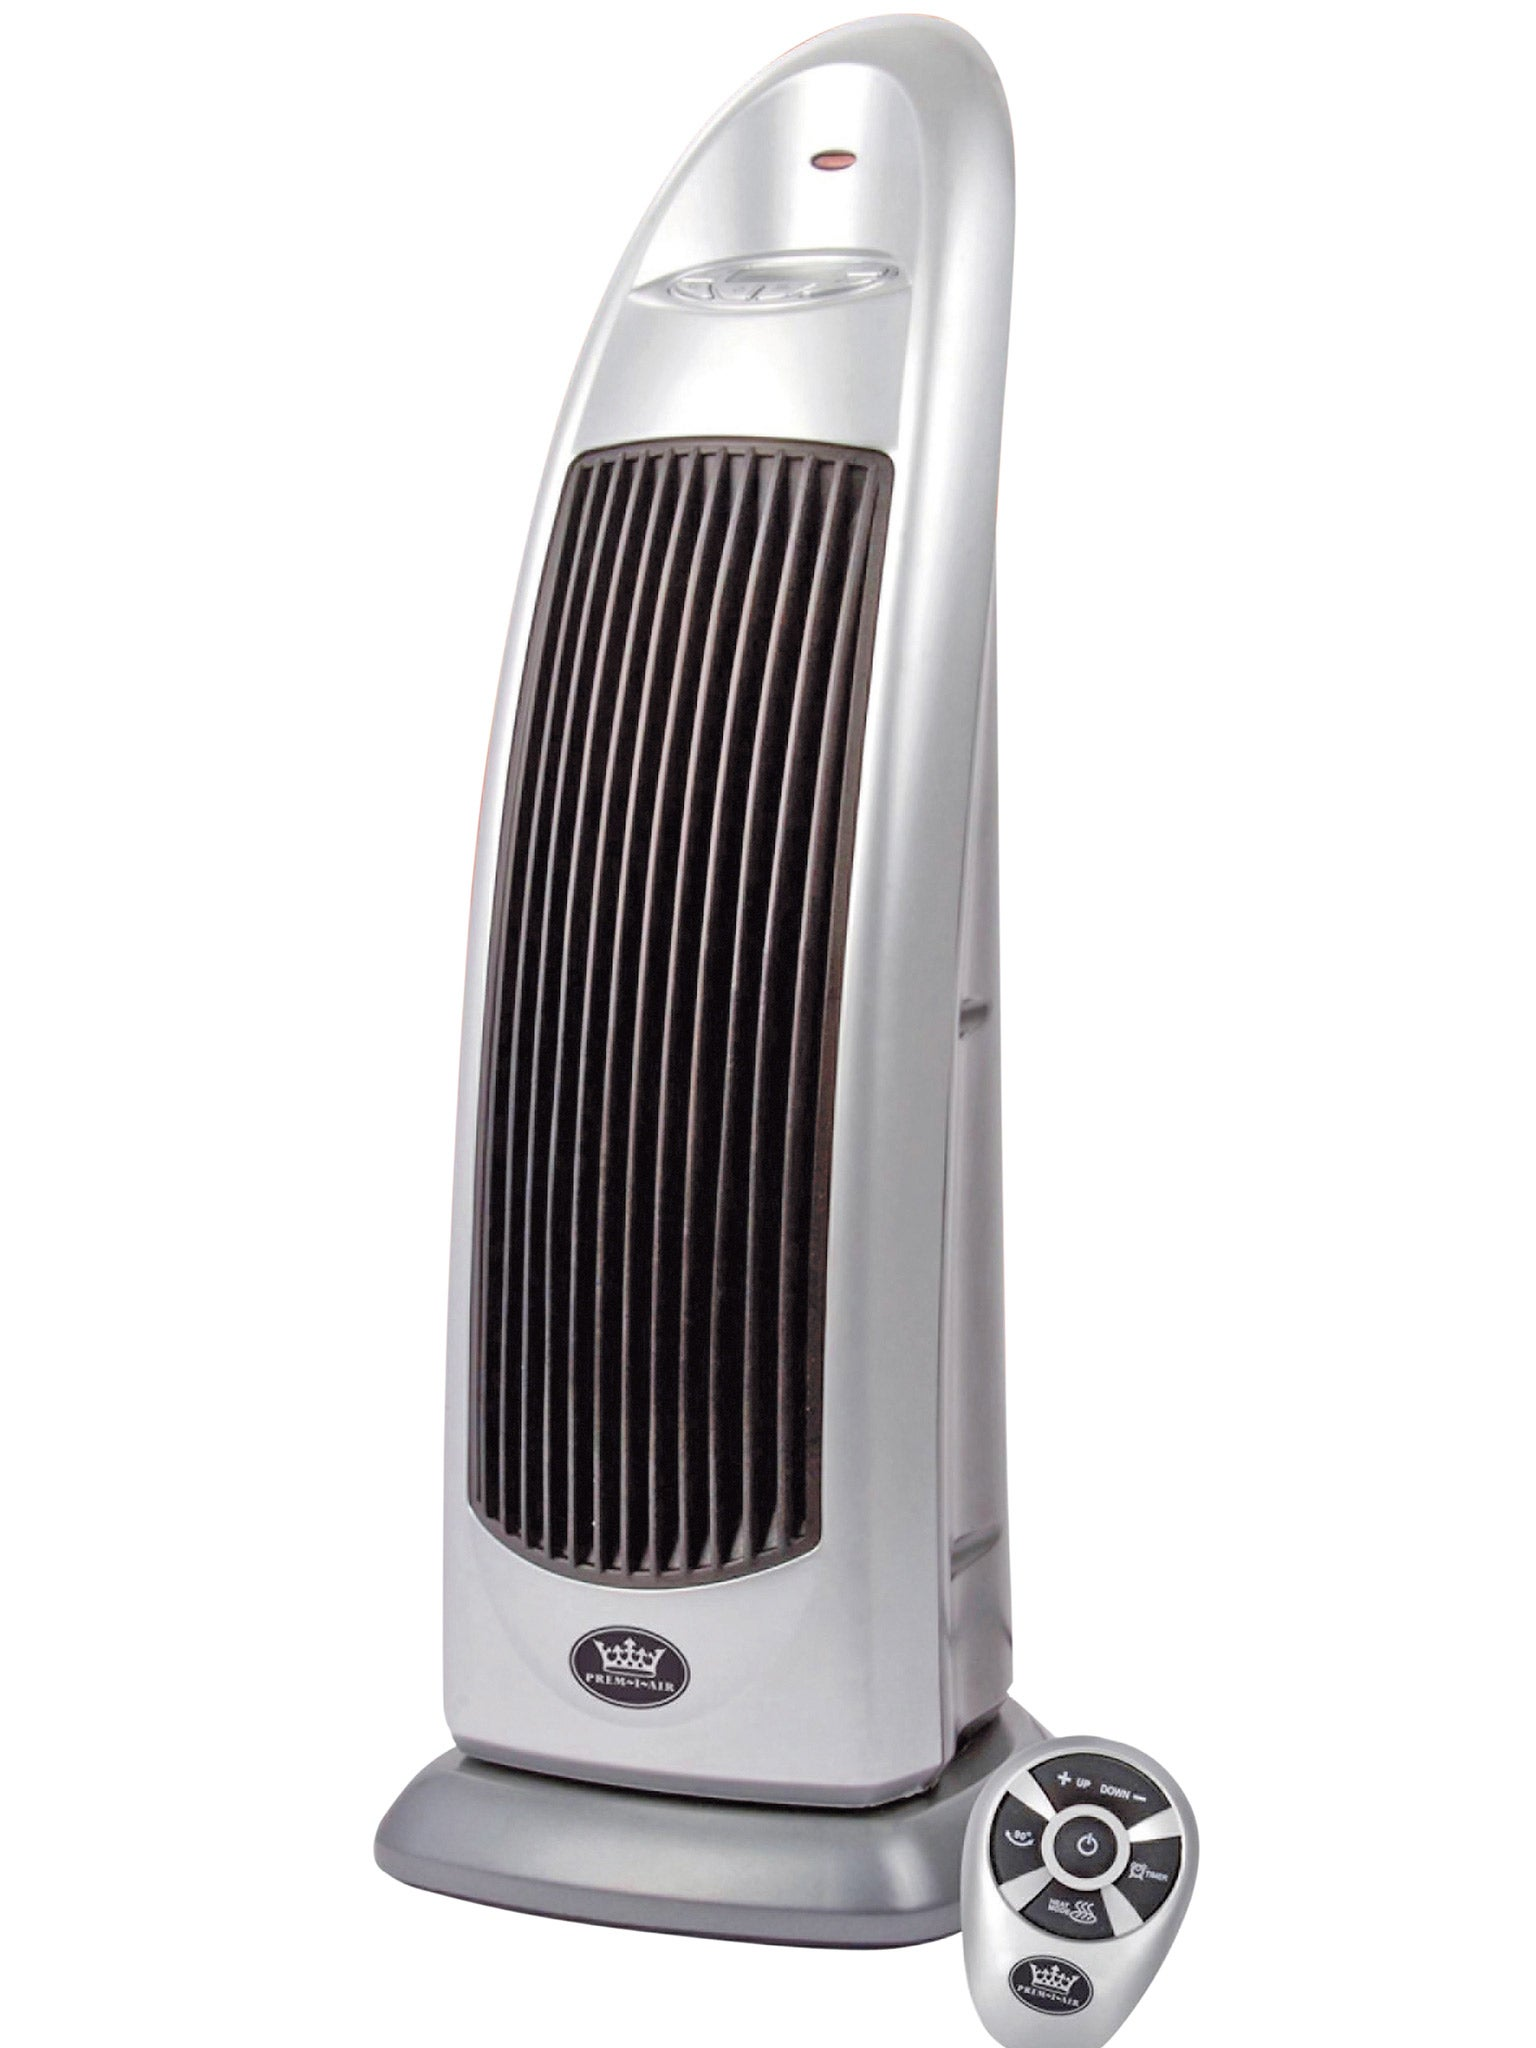 The 10 Best heaters | The Independent